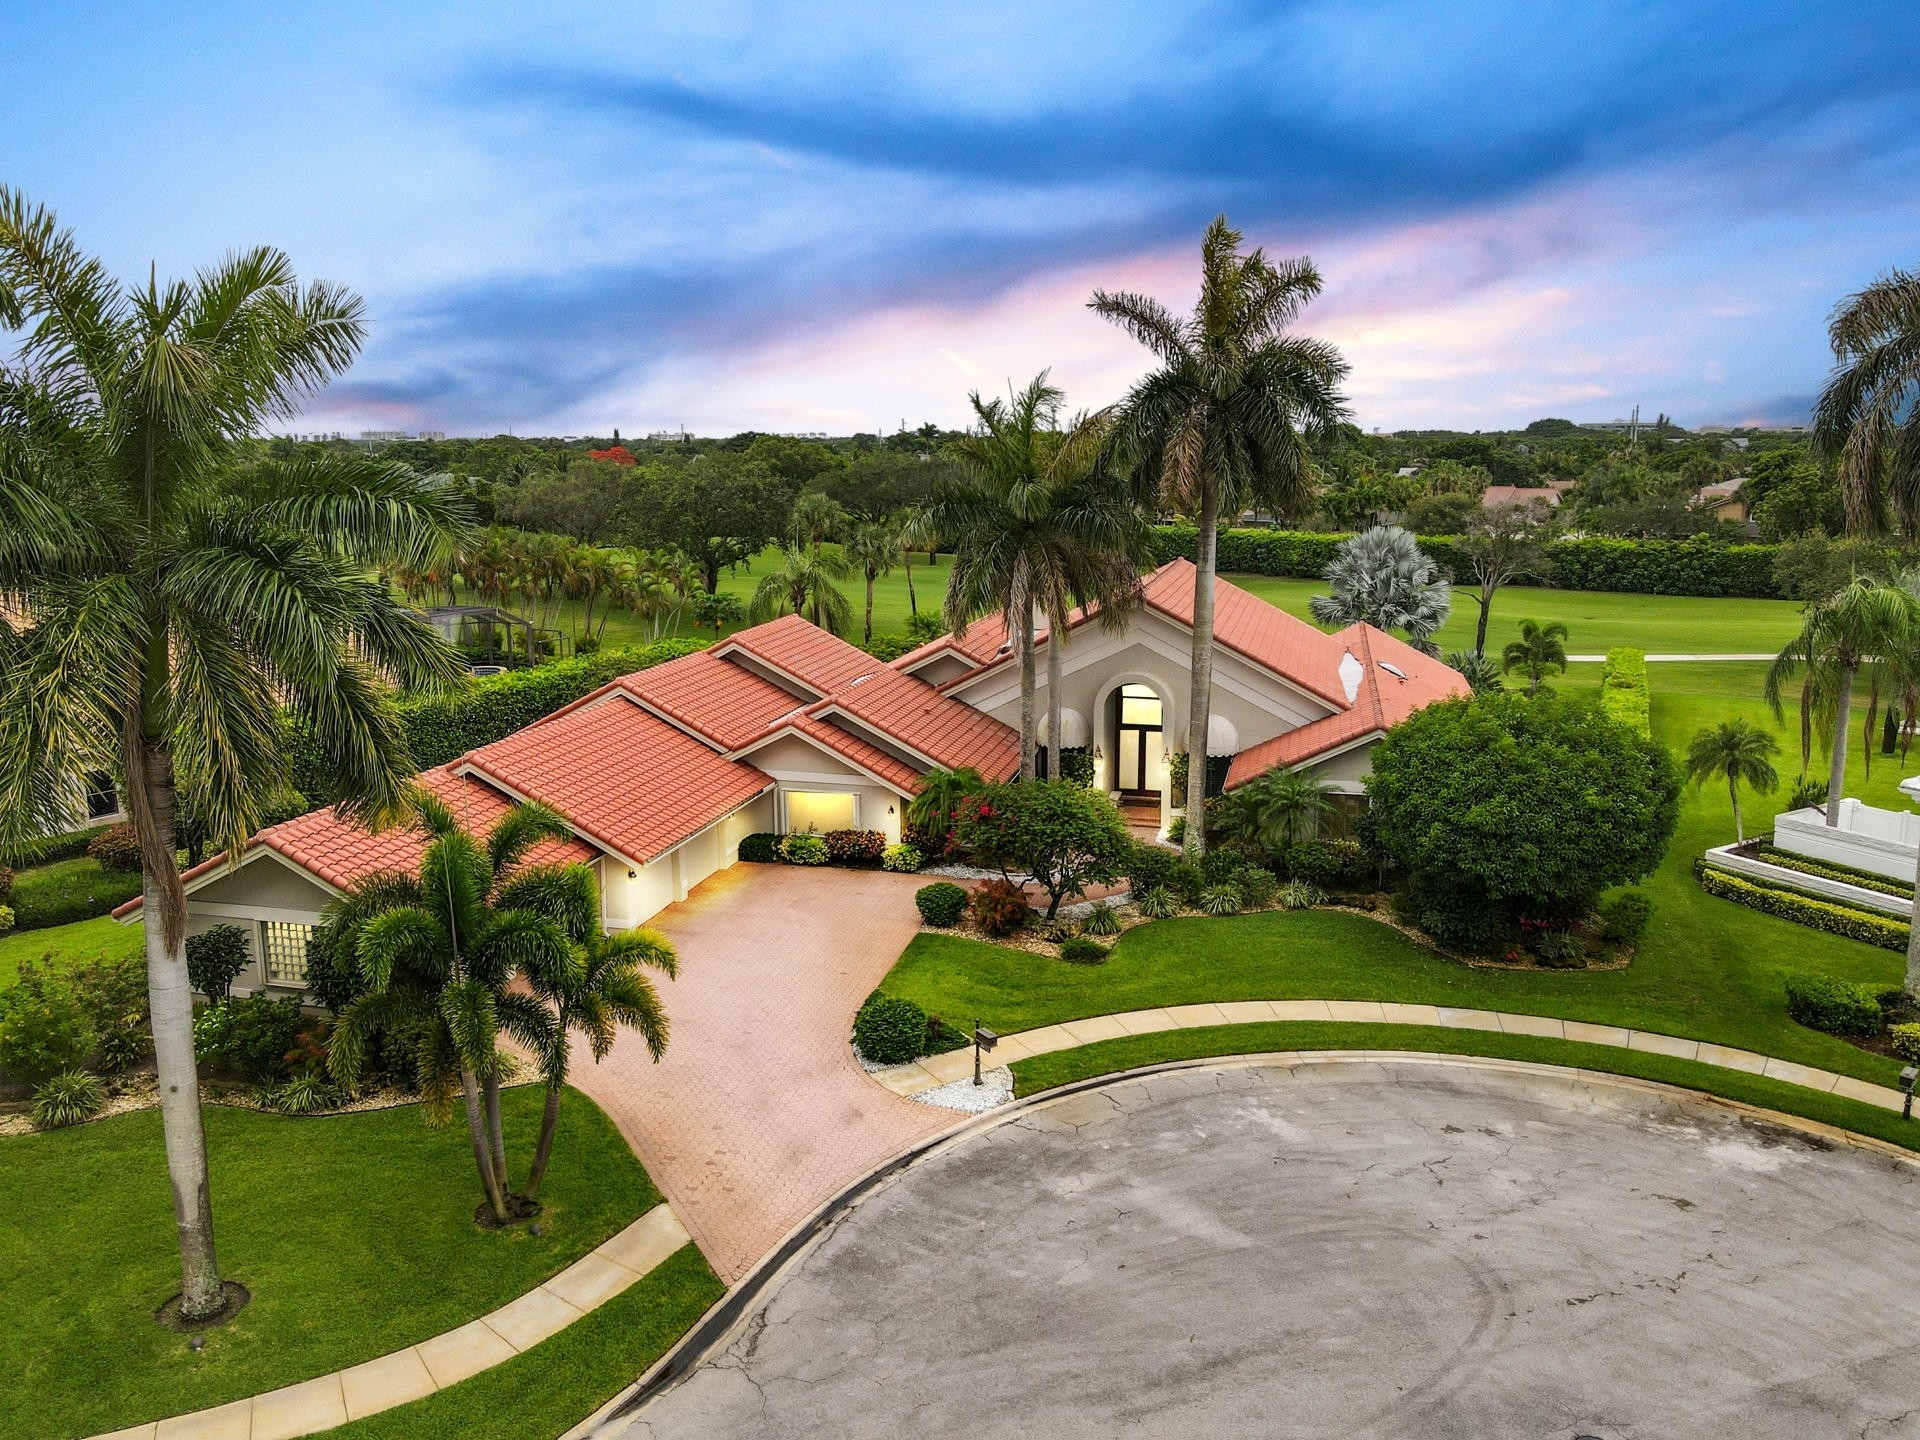 Property à Bocaire Golf Club, Boca Raton, FL 33487